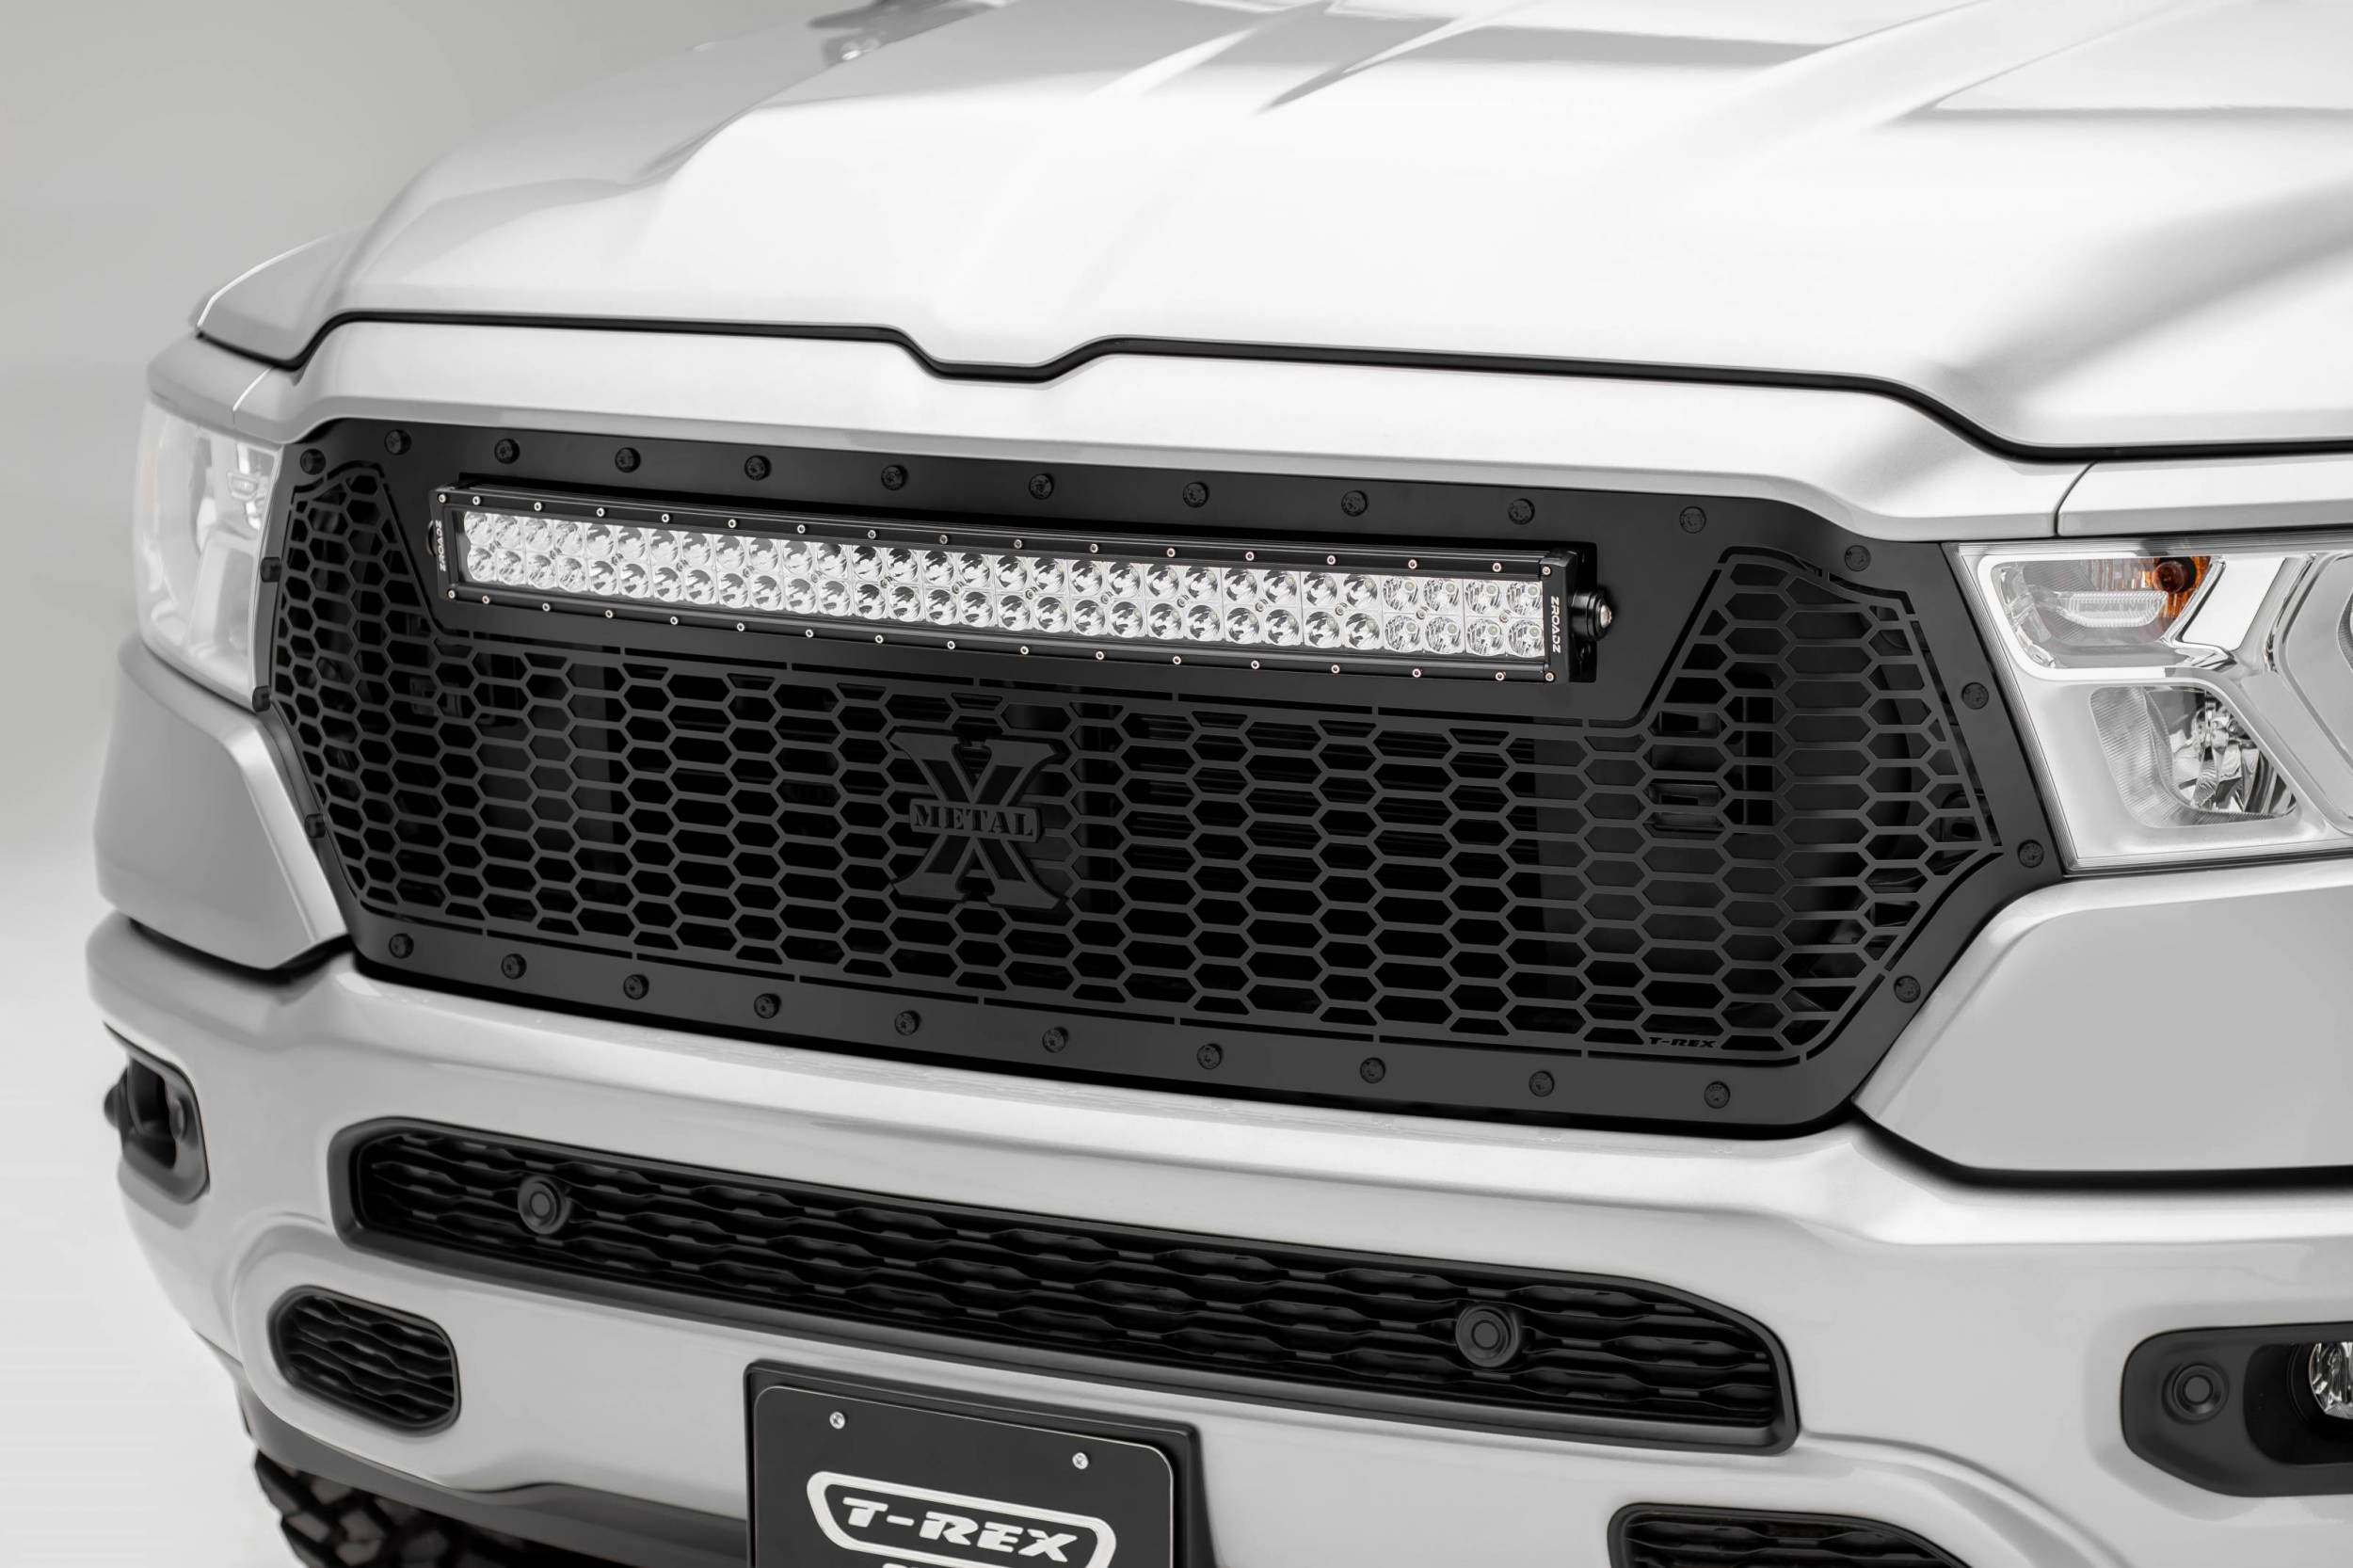 T-REX GRILLES - 2019-2021 Ram 1500 Laramie, Lone Star, Big Horn, Tradesman Stealth Laser Torch Grille, Black, 1 Pc, Replacement, Black Studs with 30 Inch LED, Does Not Fit Vehicles with Camera - PN #7314651-BR